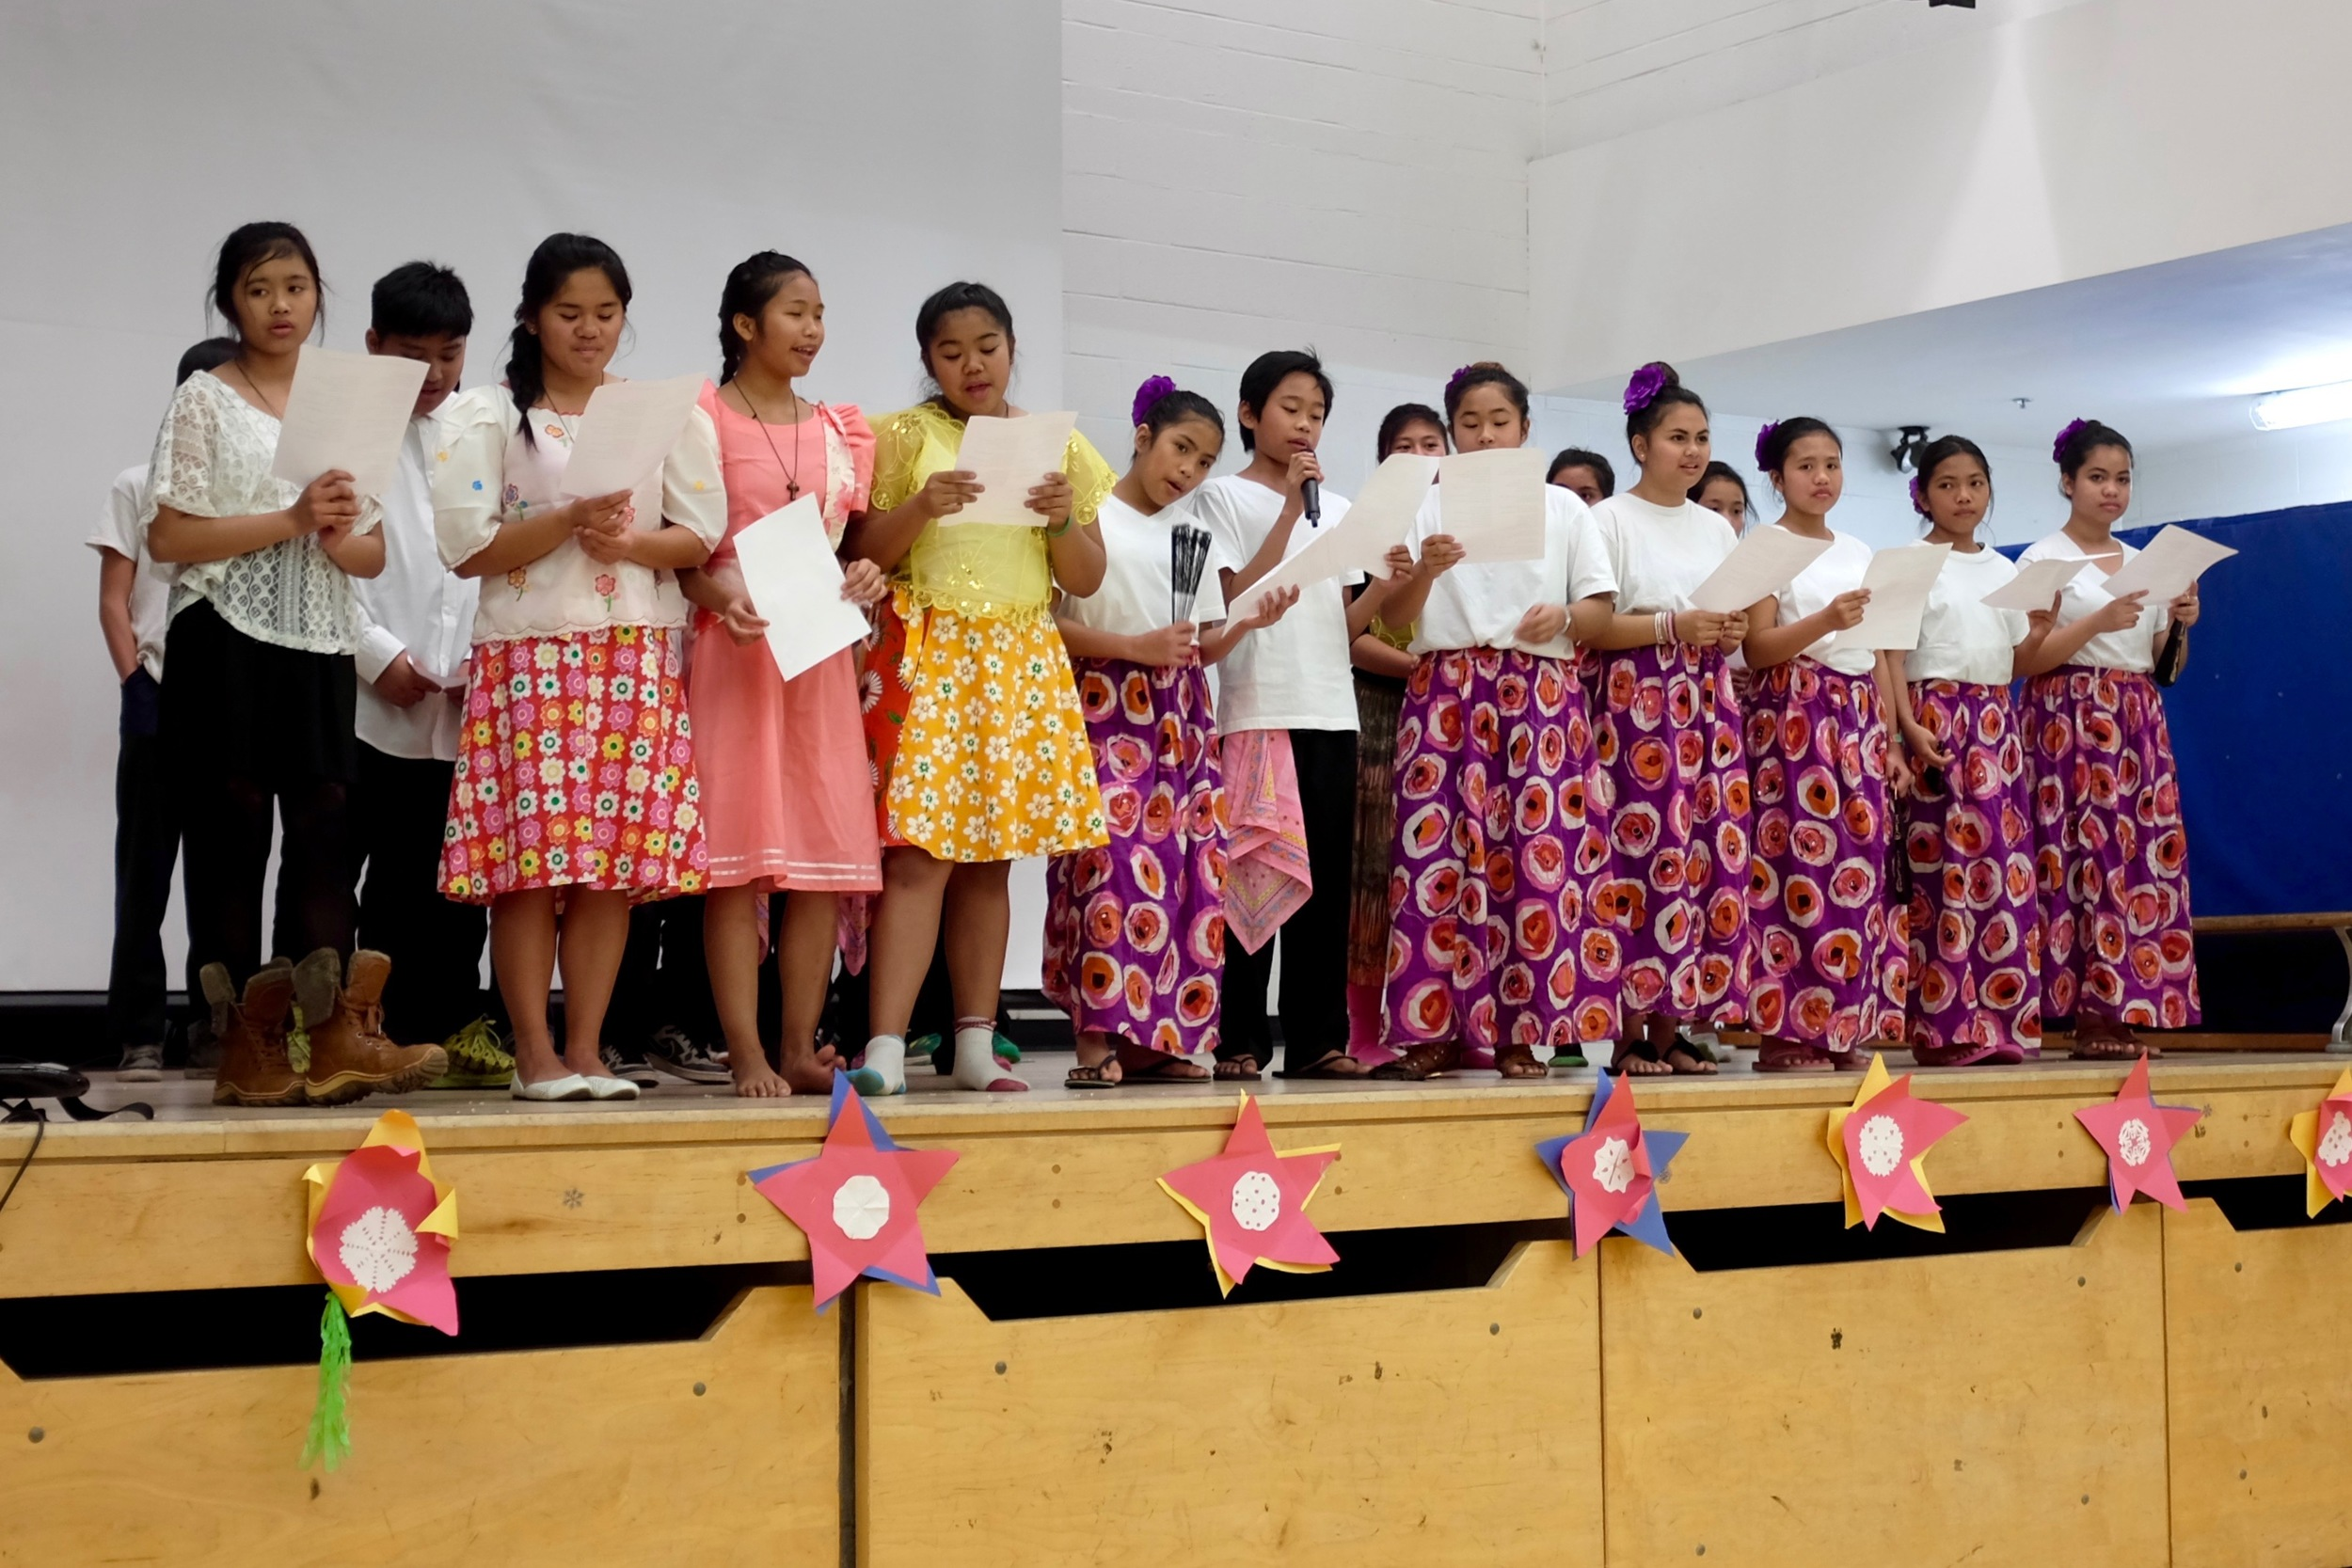 Students perform traditional Philippine Christmas songs.